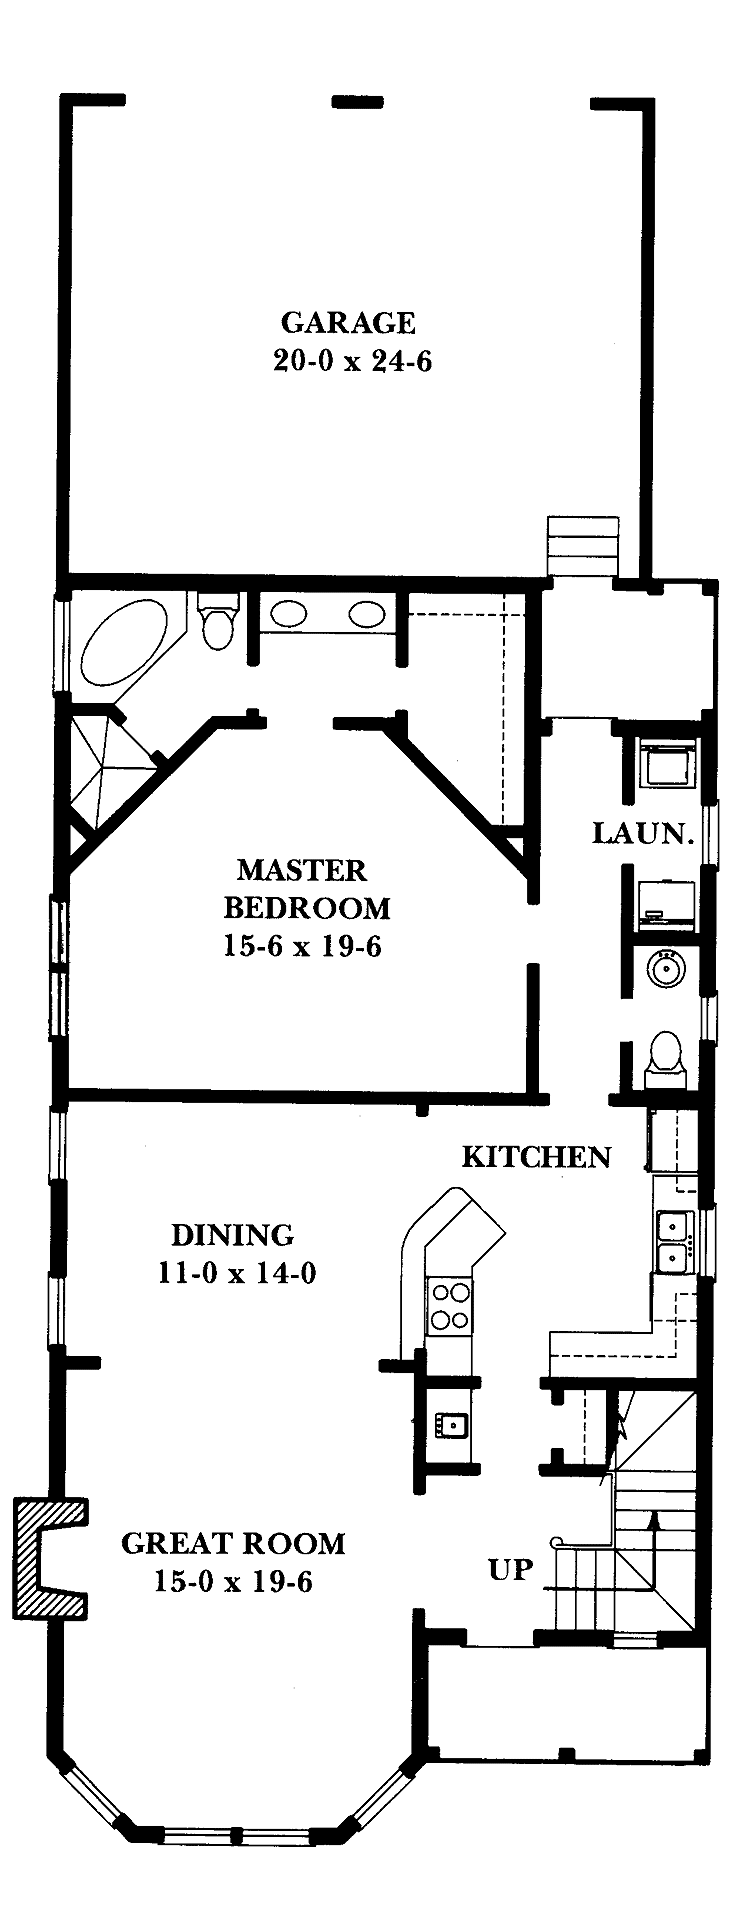 Small House Blueprints small floor plan change up stairs to one bedroom w bath and closet 900 Sq Ft Architecture Builder House Plans Designs Small Size And Picture Delectable Builder House Plans